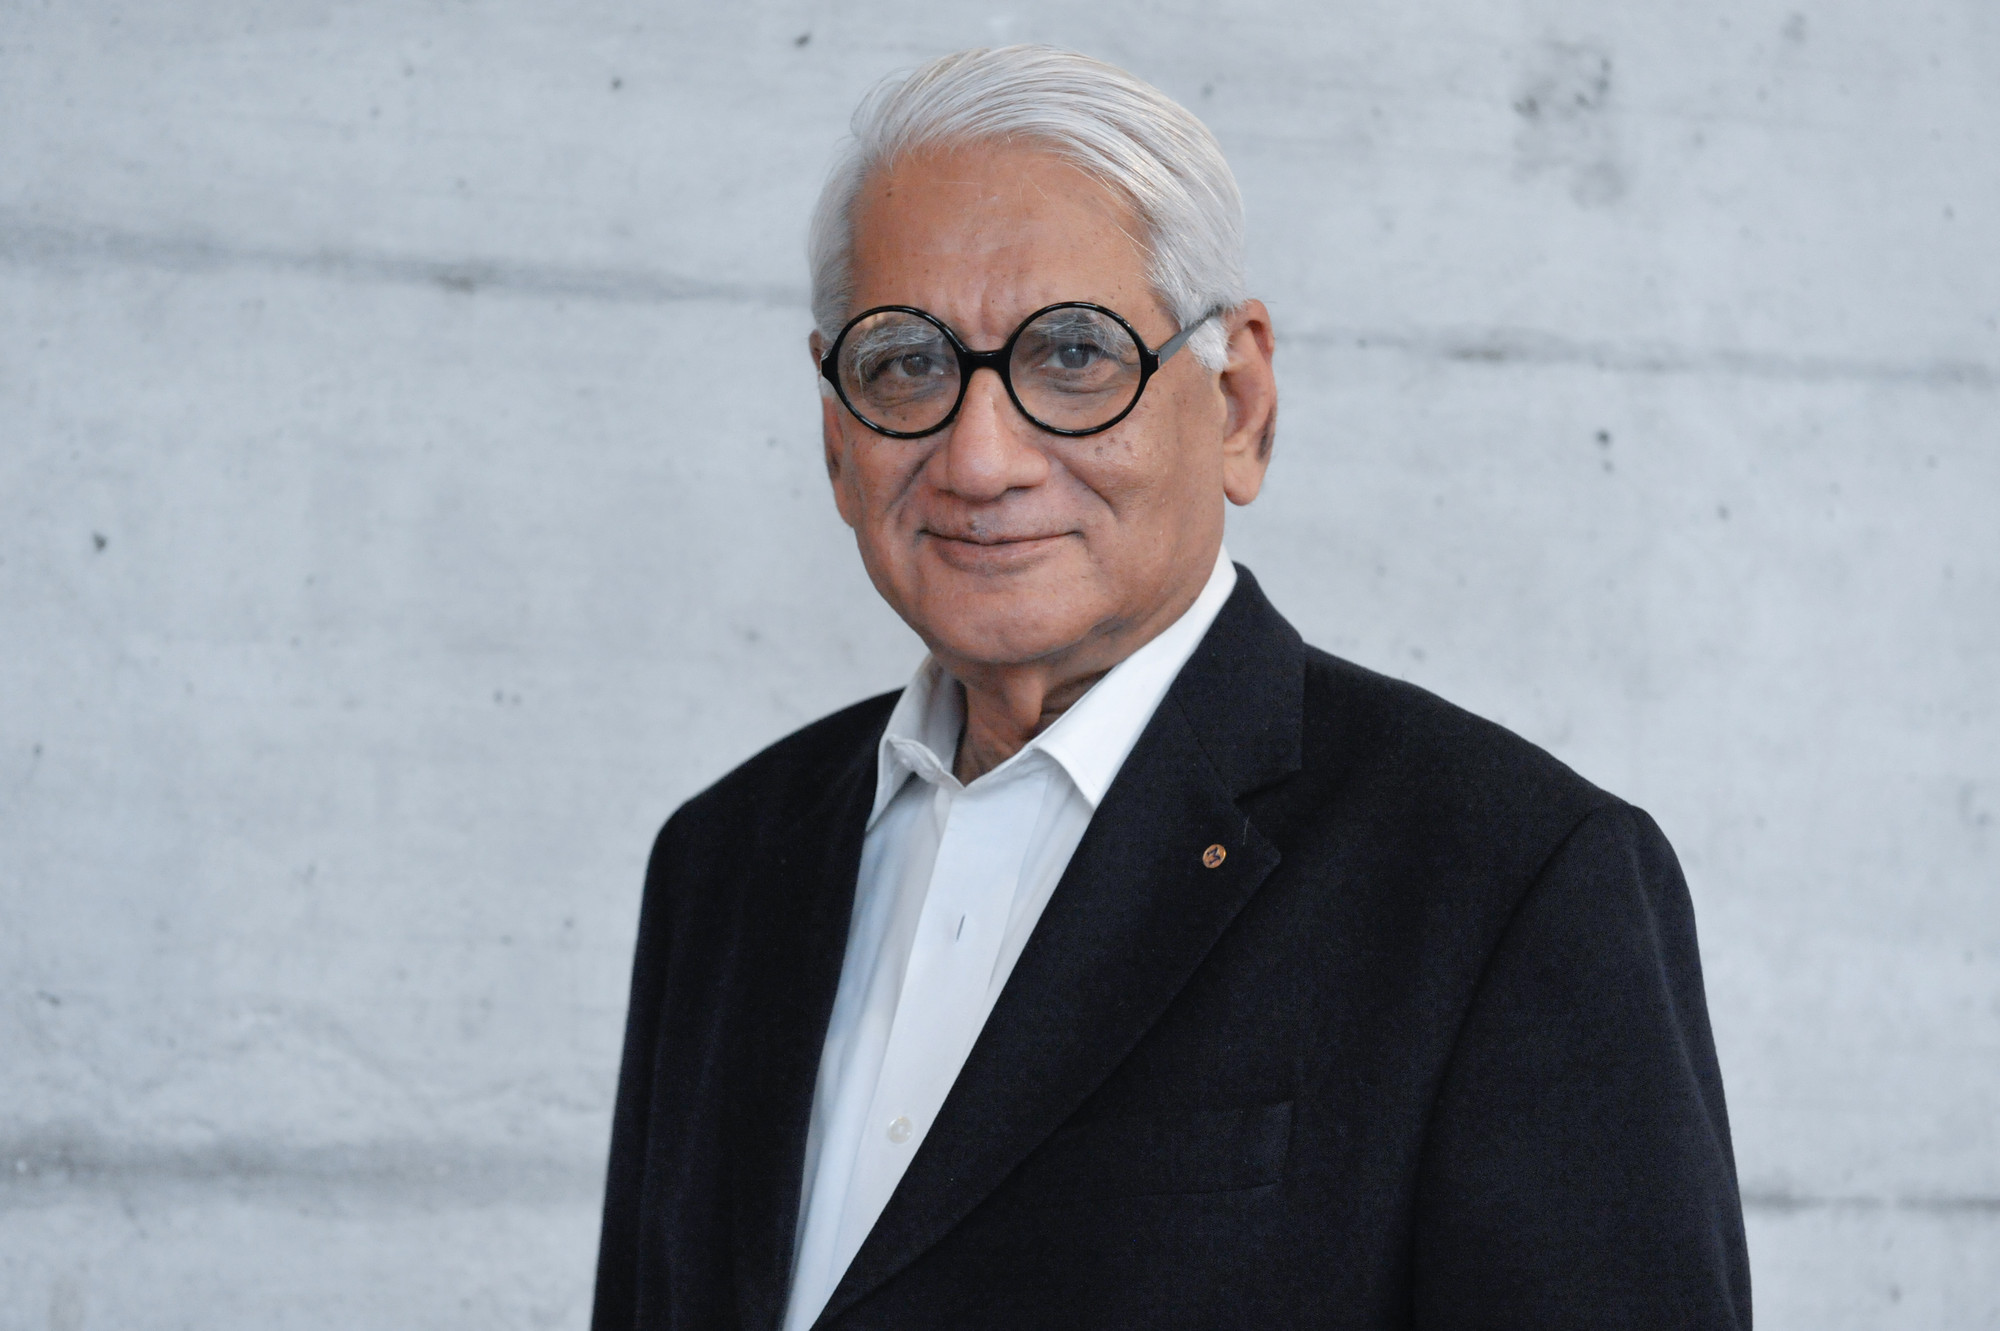 RIBA To Open Chapter In India, Charles Correa, Indian architect and recipient of the RIBA Gold Medal (1984). Image © Charles Correa Associates